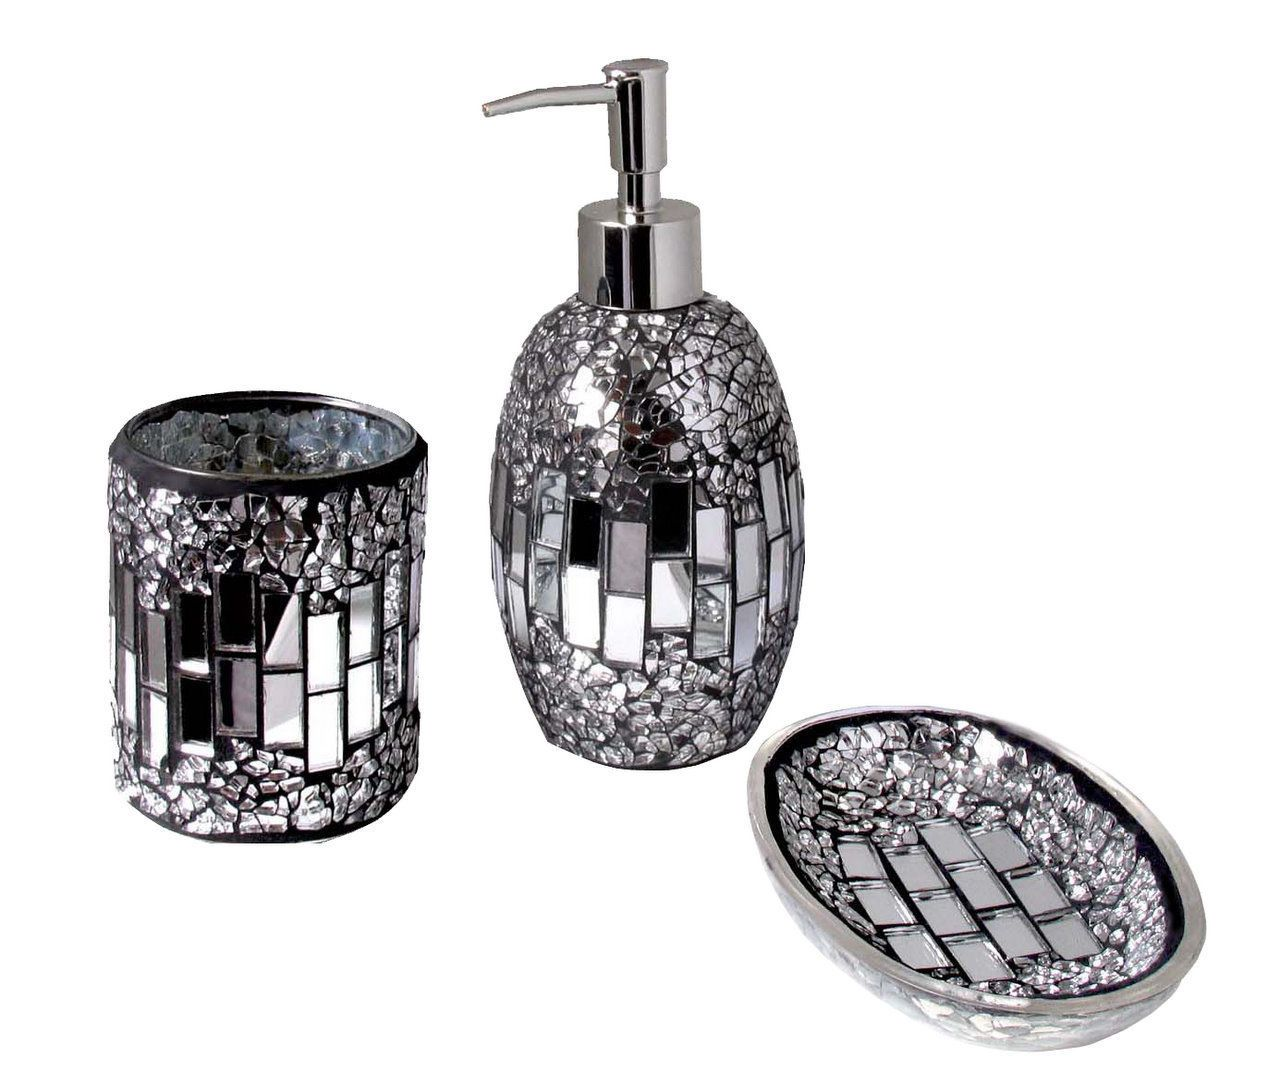 Glitter Bathroom Accessories